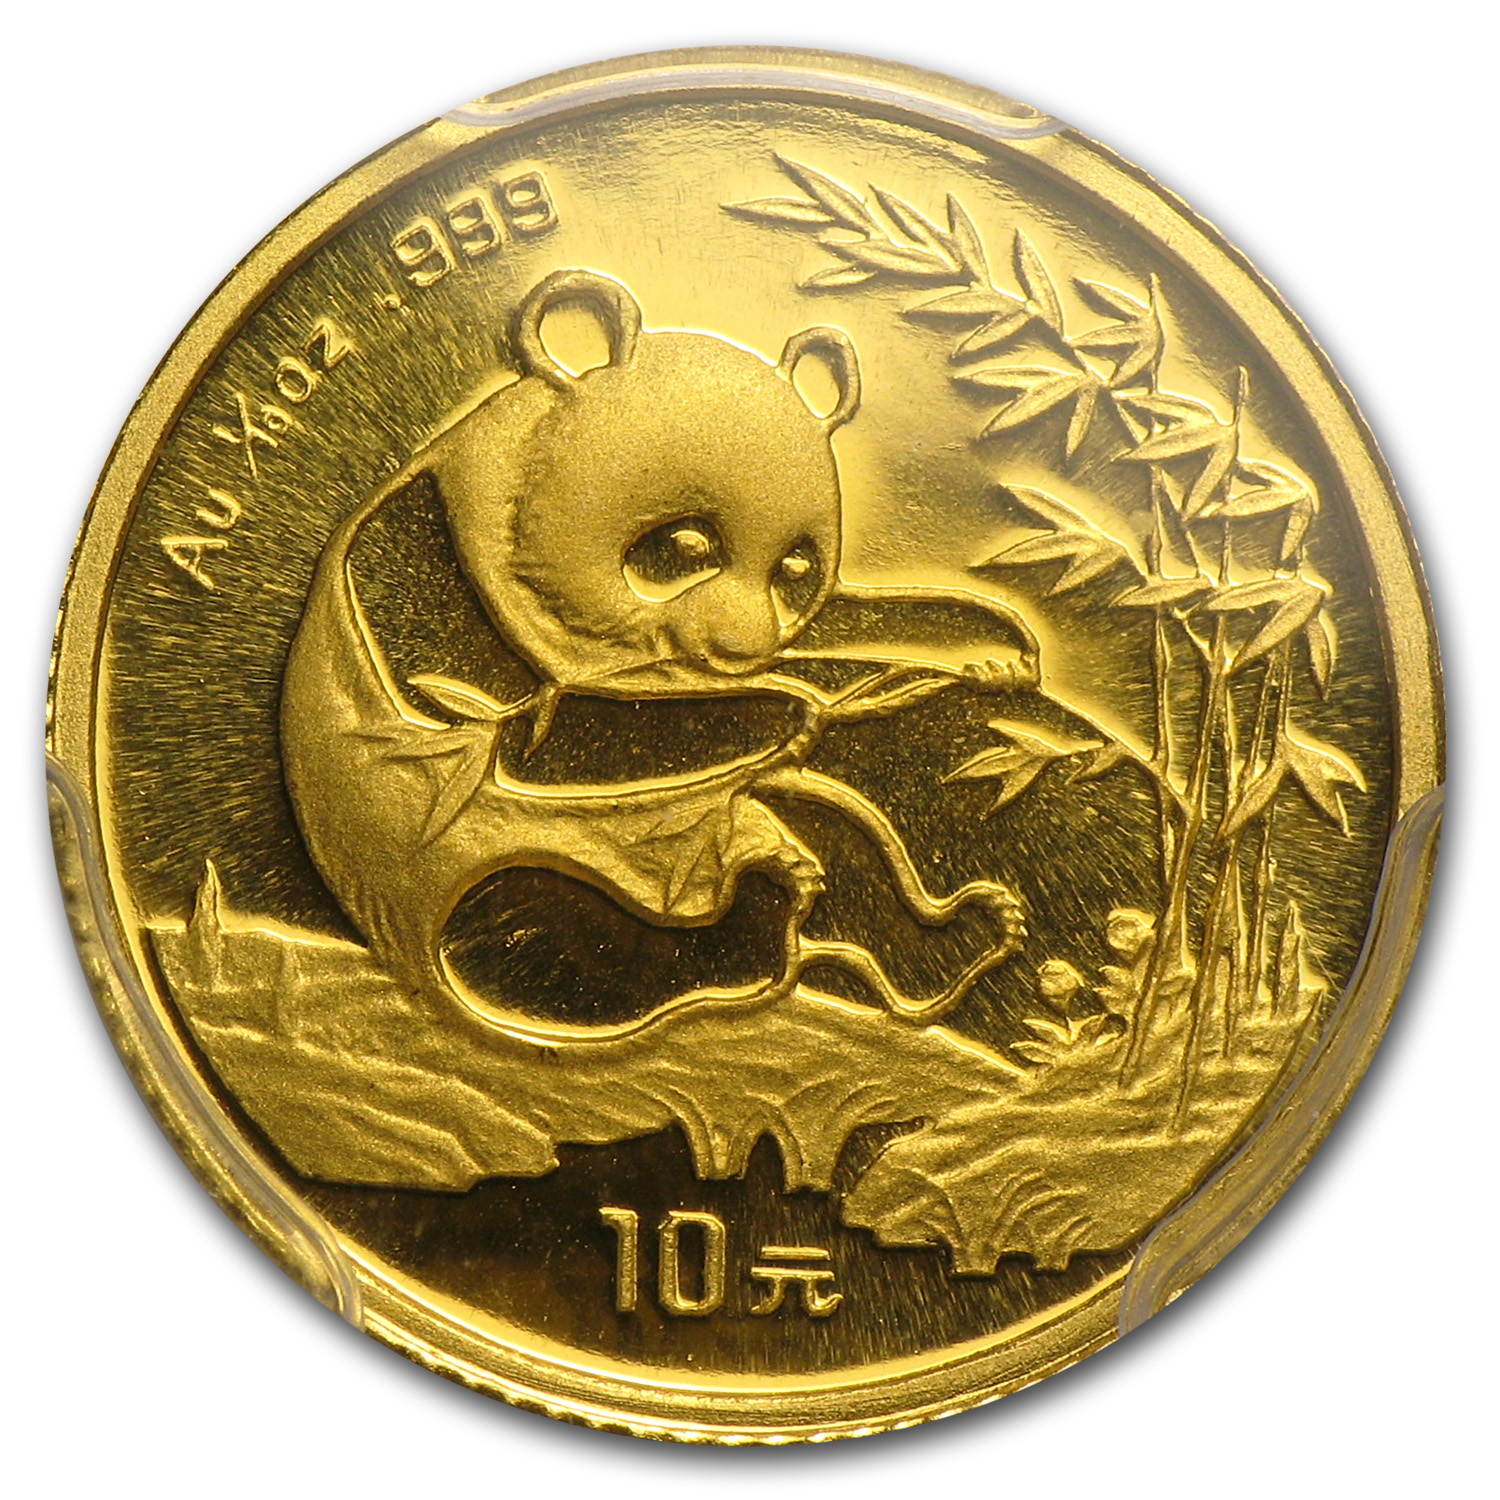 1994 (1/10 oz) Gold Chinese Pandas - (Large Date) - MS-69 PCGS